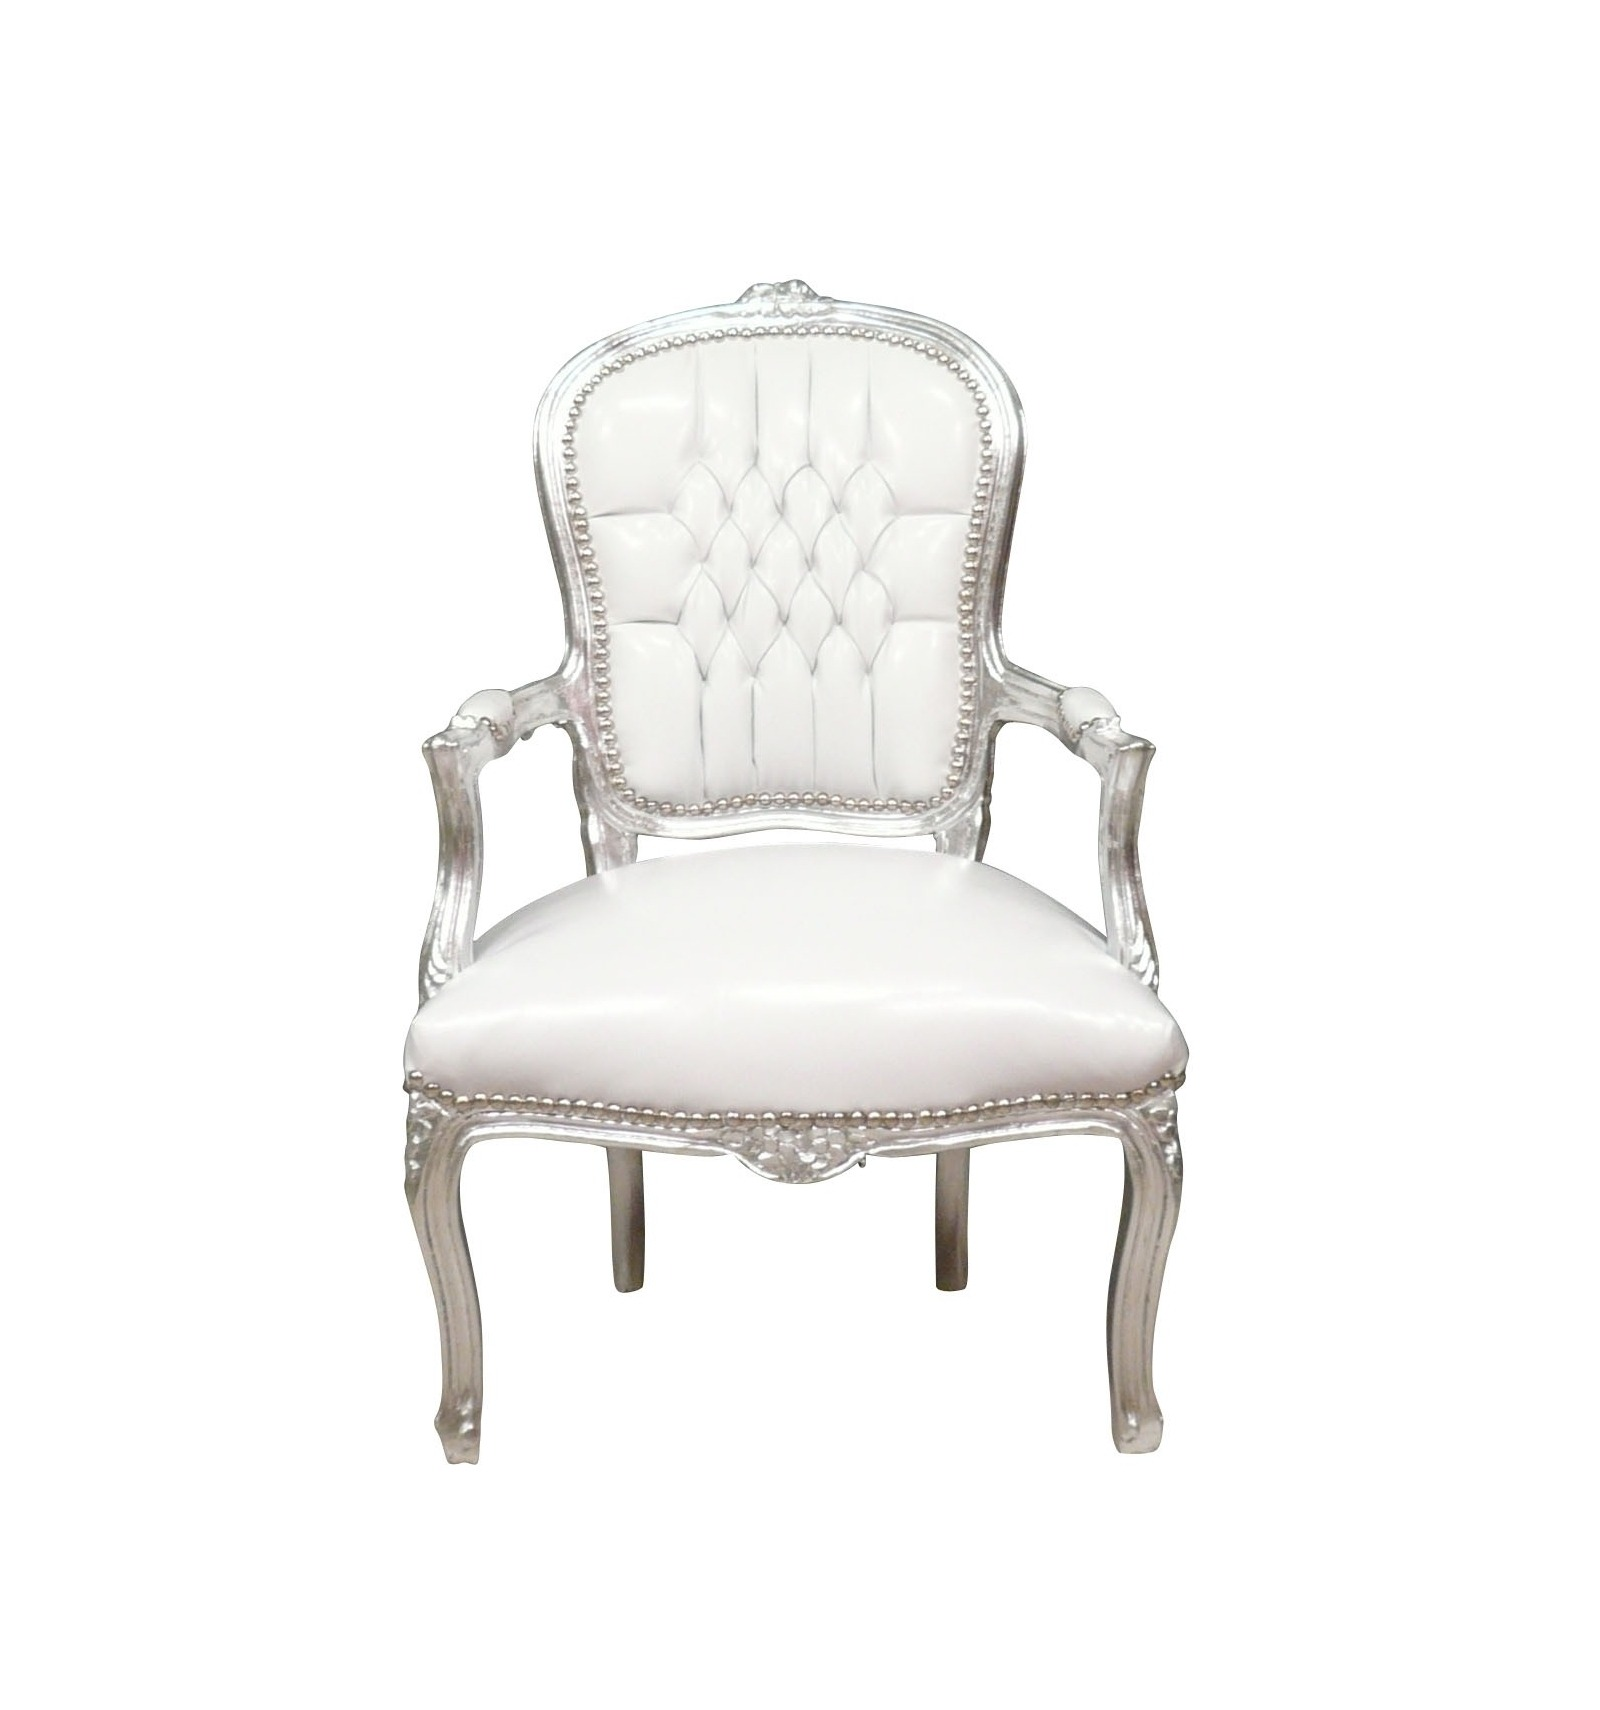 Baroque Armchair Louis Xv White And Silver Chair